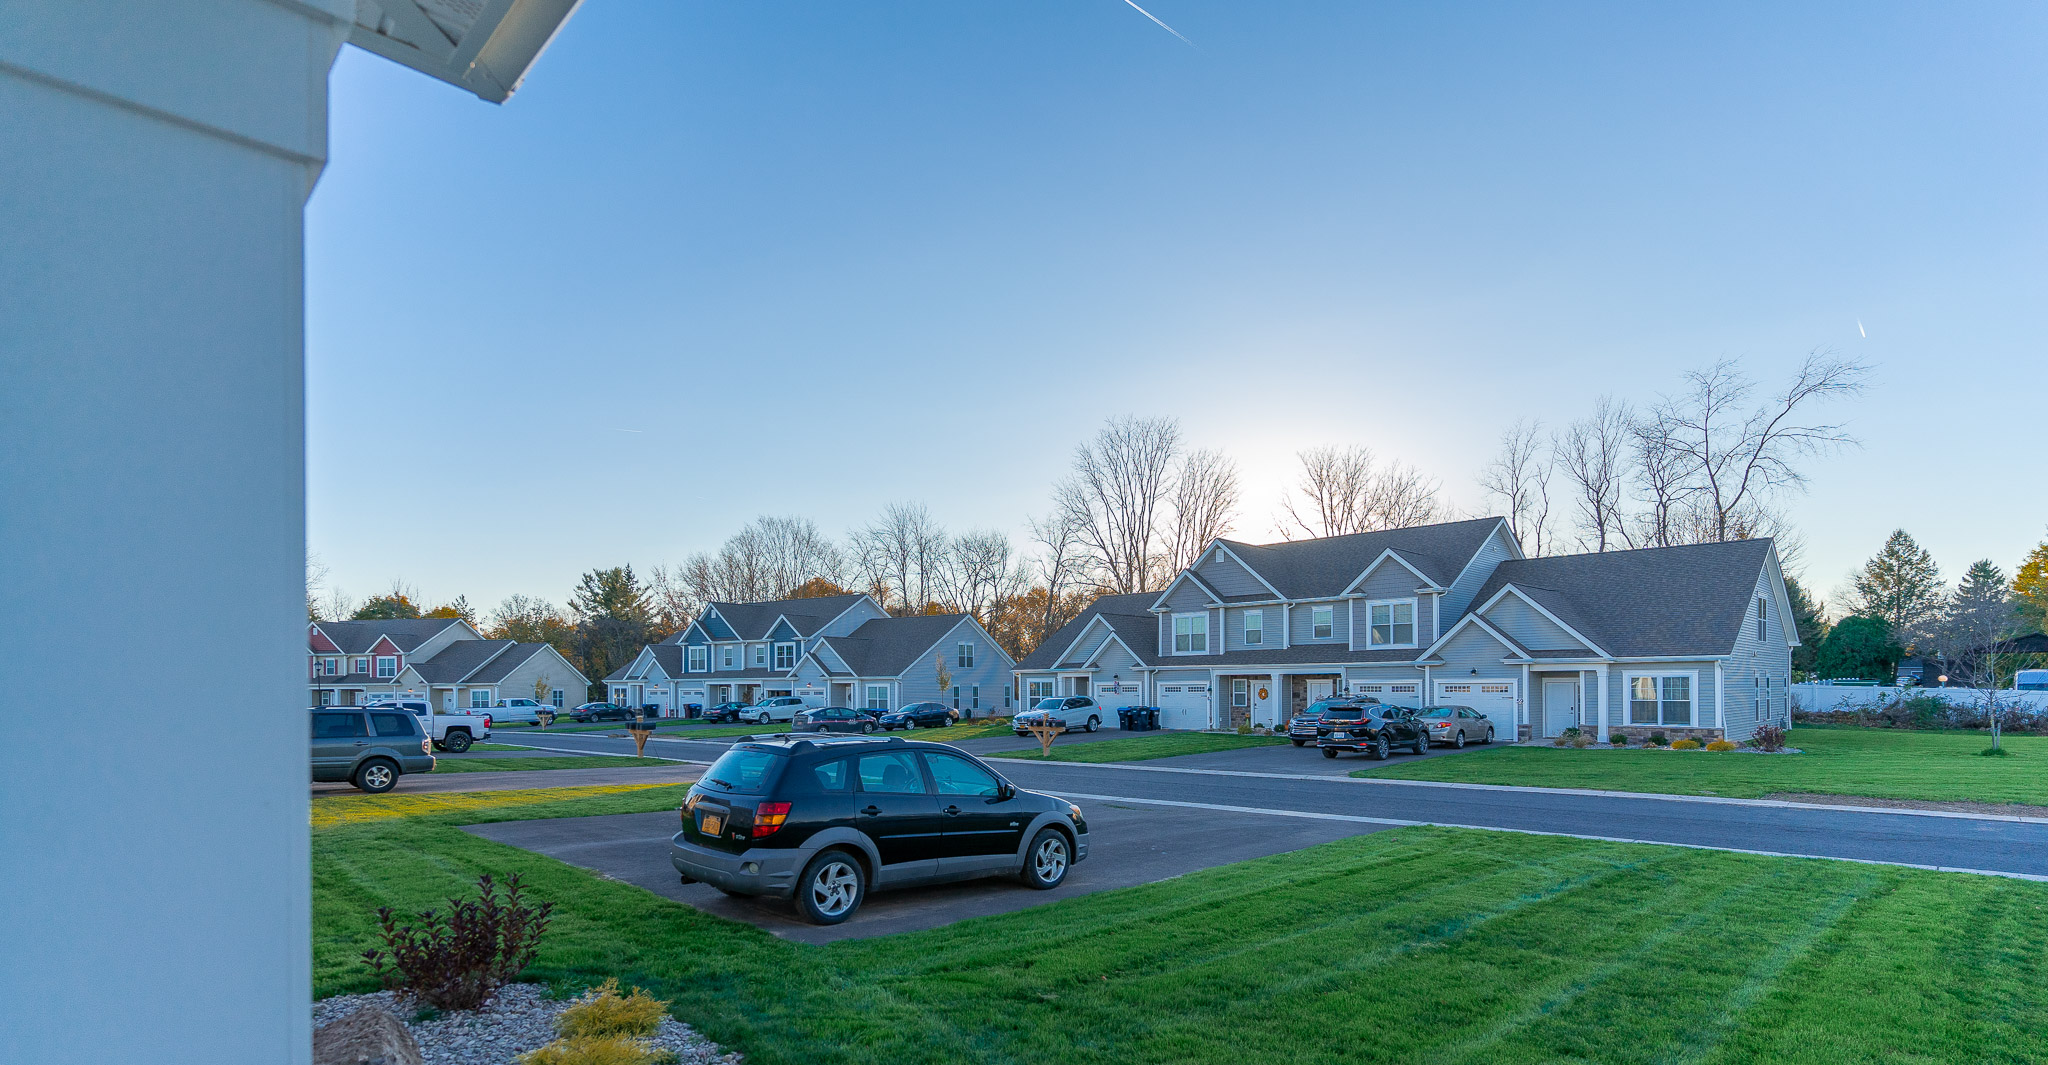 Ogden Apartment Rentals at Green Wood Park Townhouses and Apartments in Ogden, NY